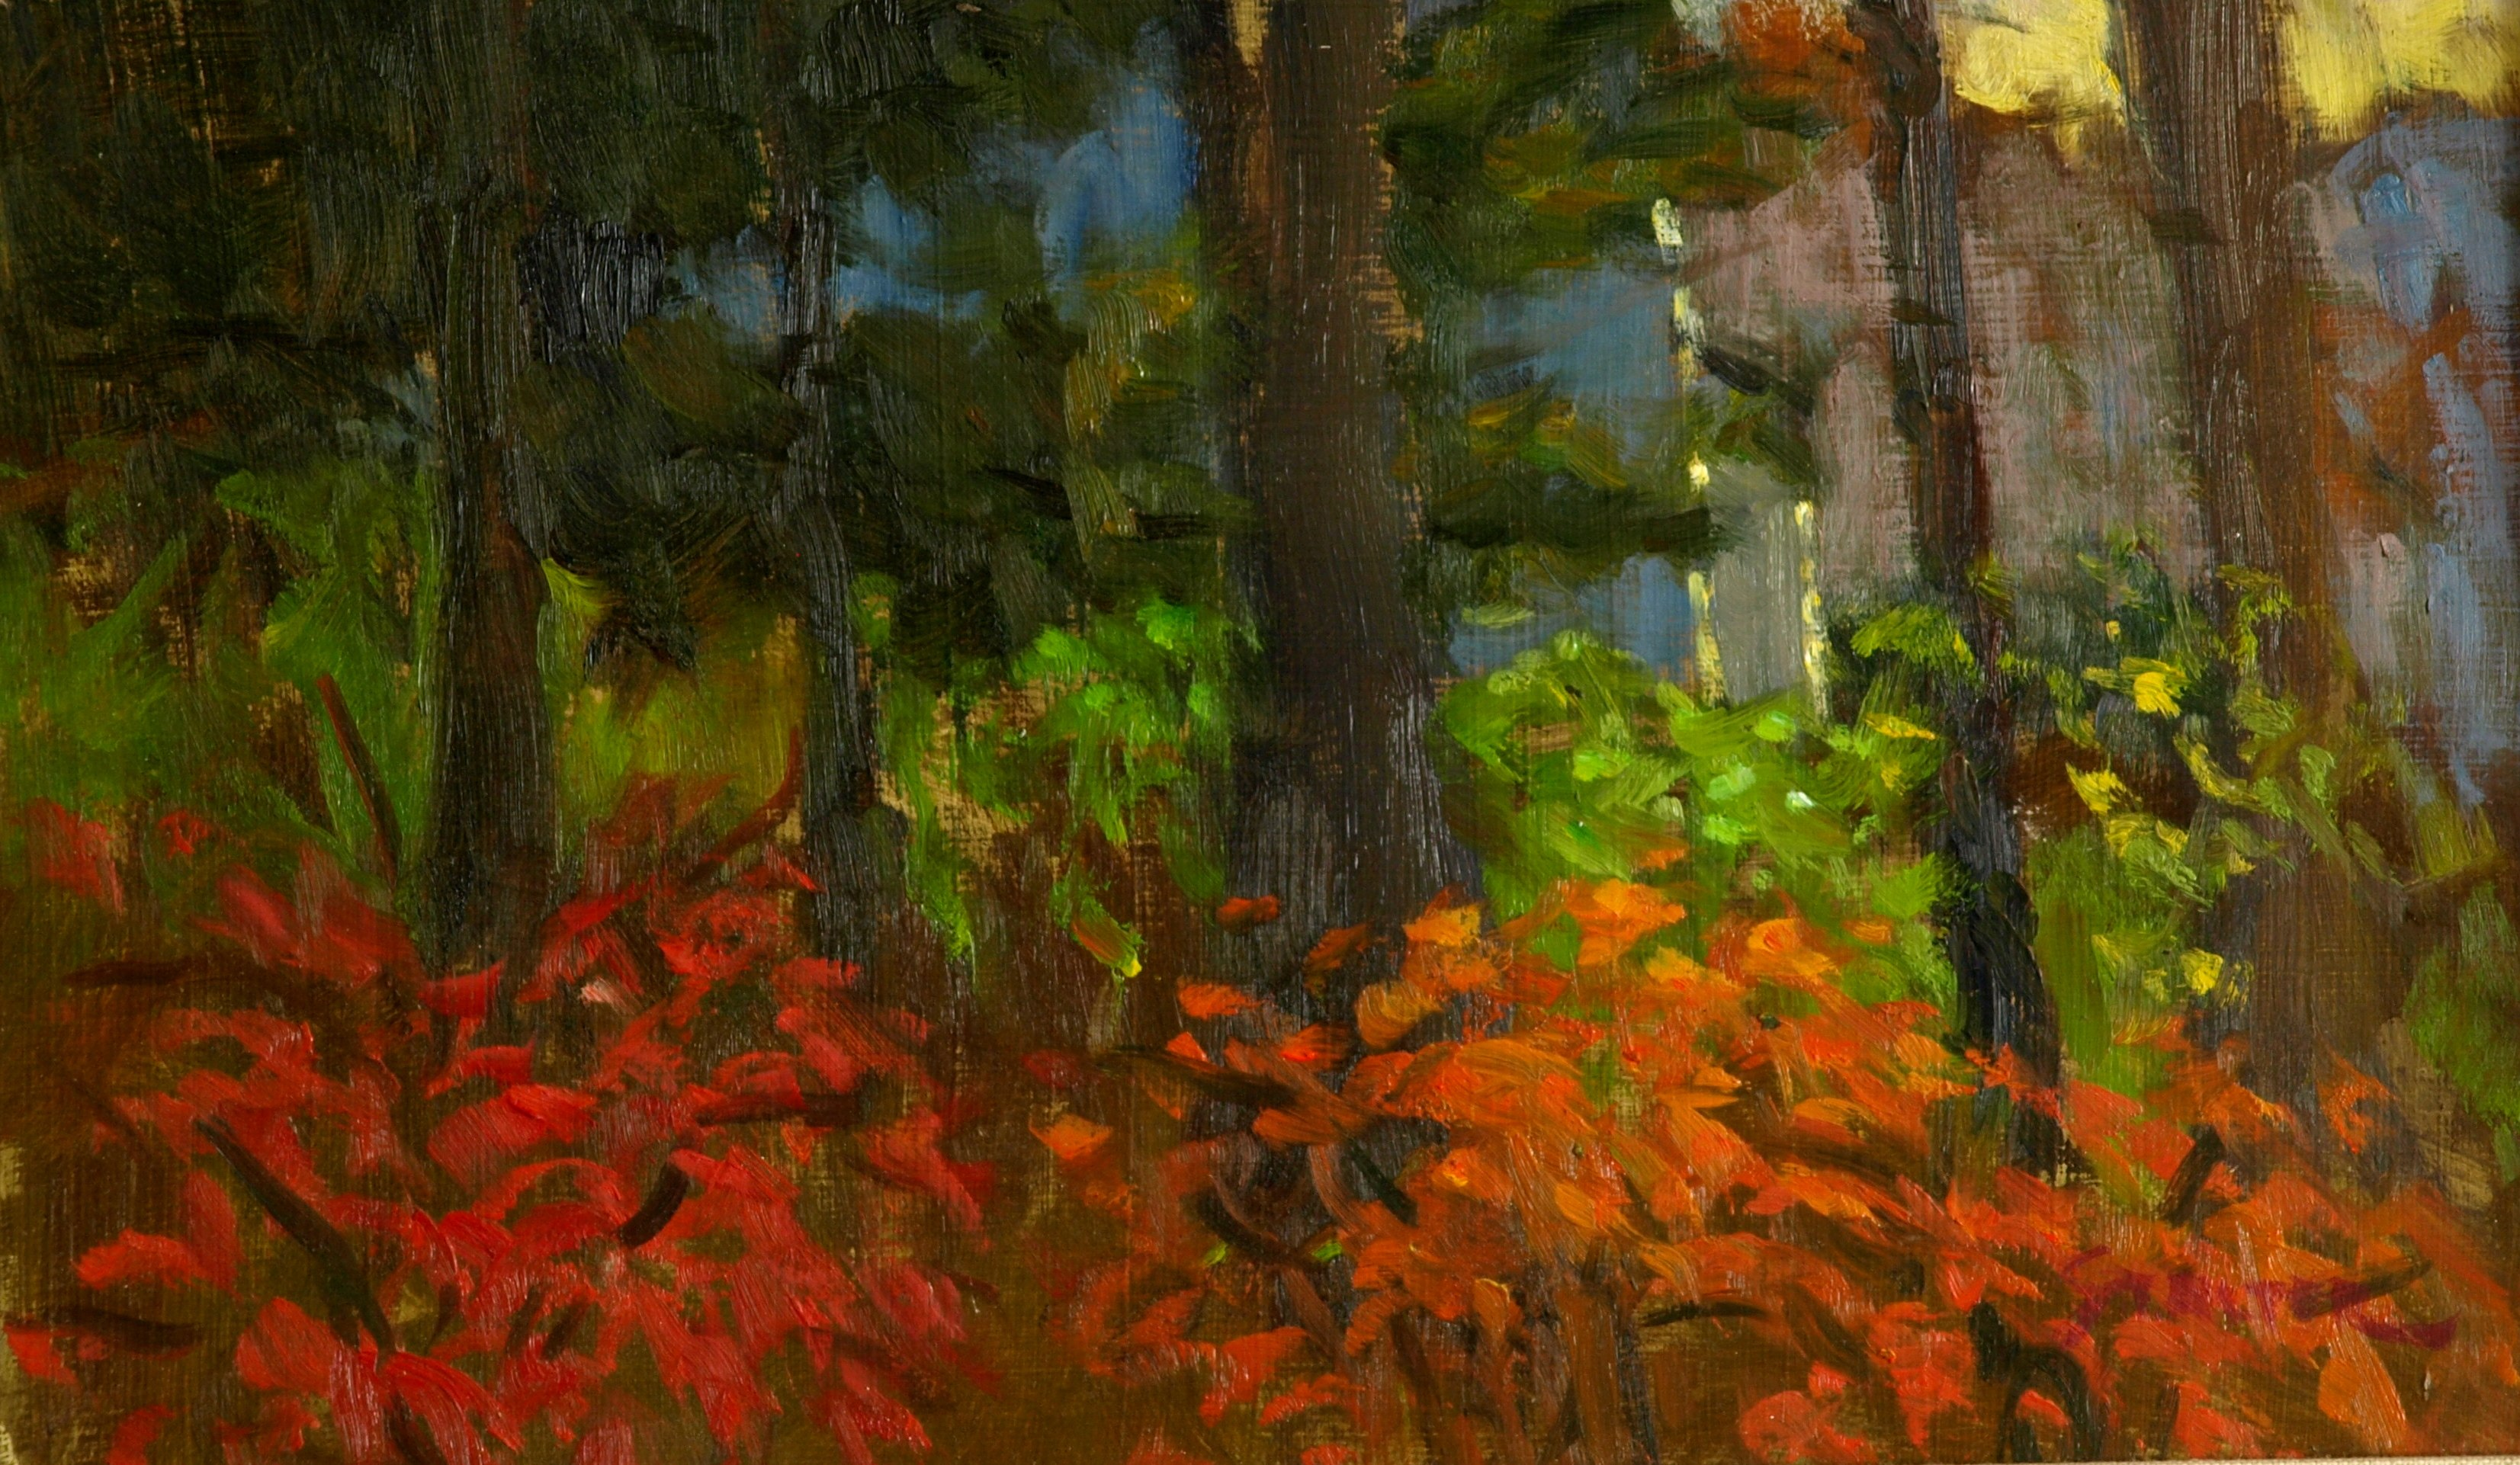 Autumn Glory, Oil on Panel, 8 x 14 Inches, by Richard Stalter, $225